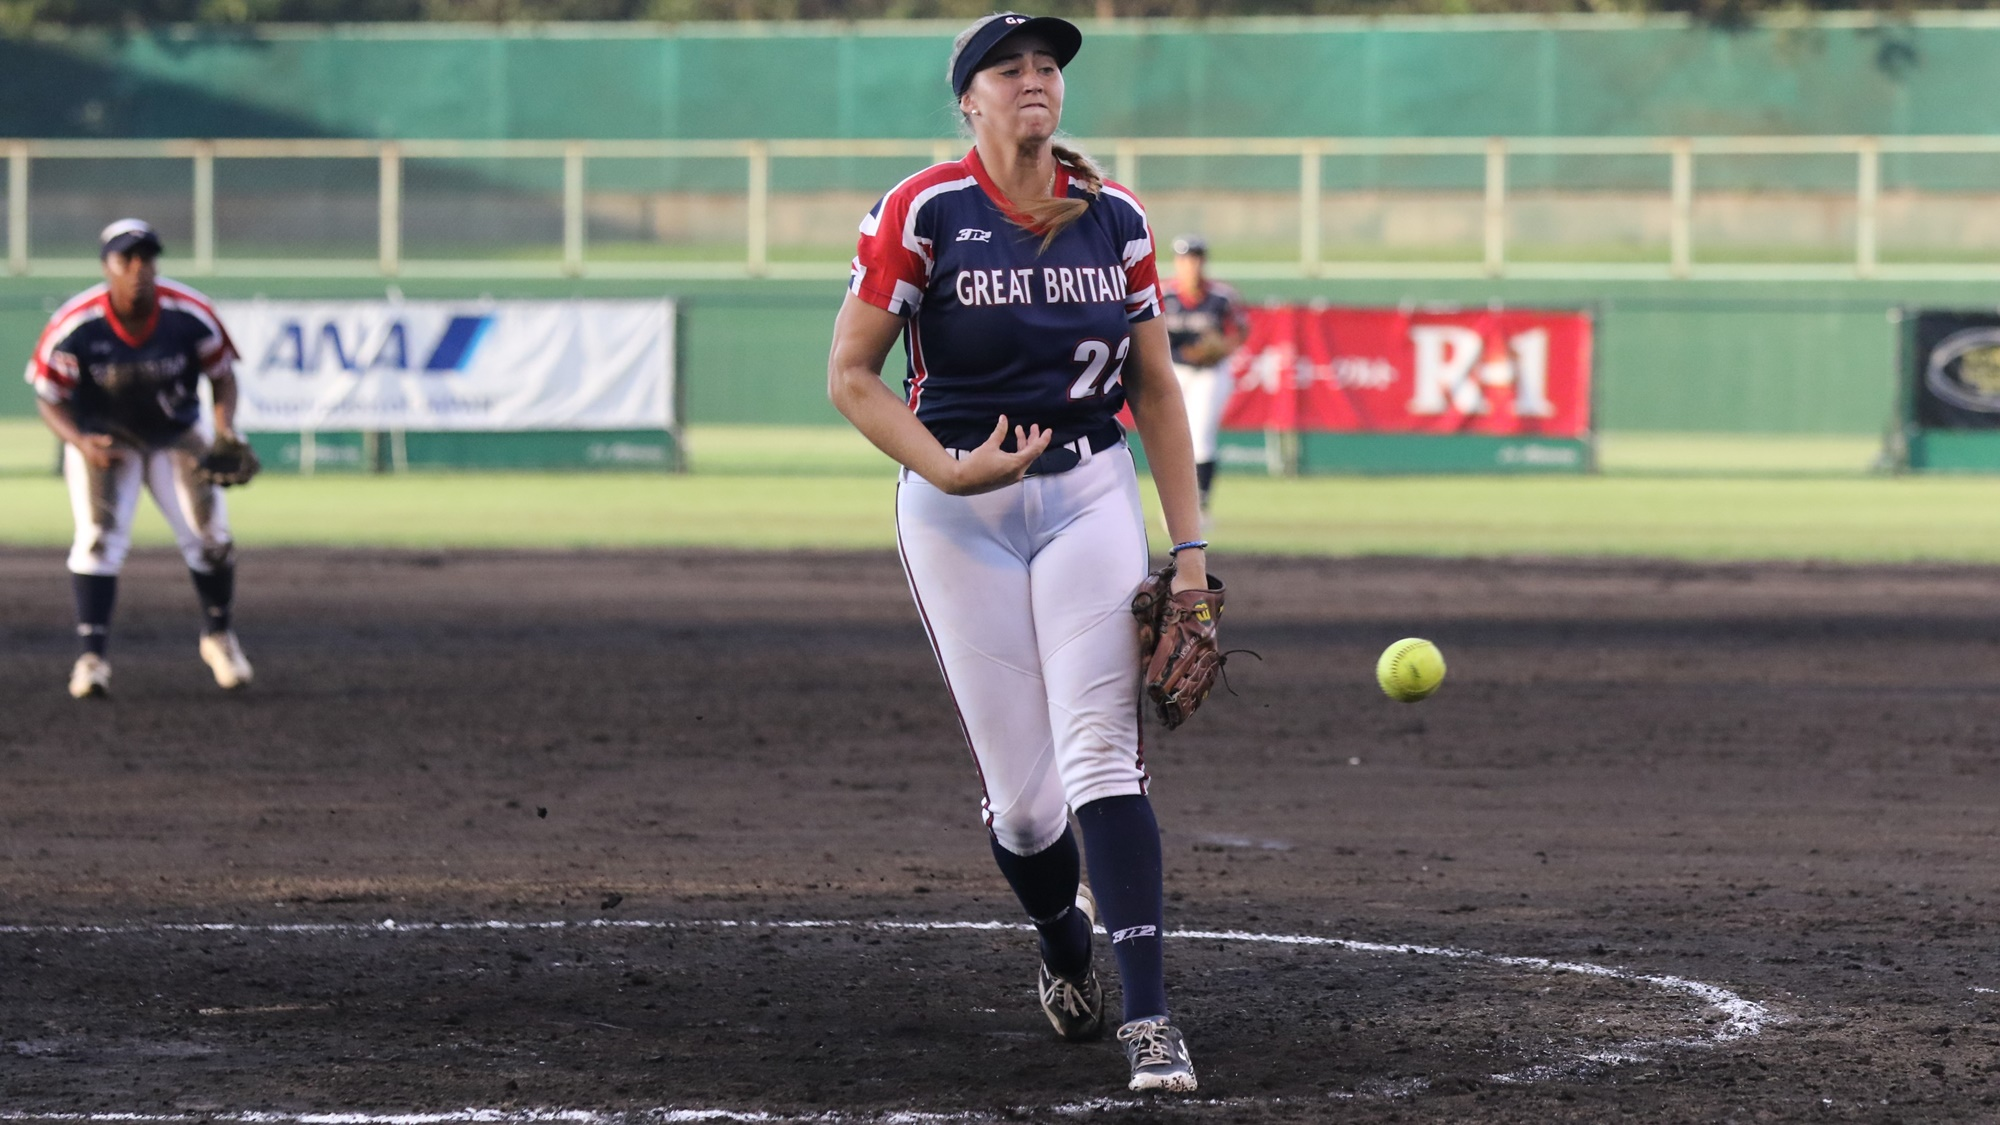 Georgina Corrick pitched in relief to secure Great Britain a win over Venezuela and sixth place in group B